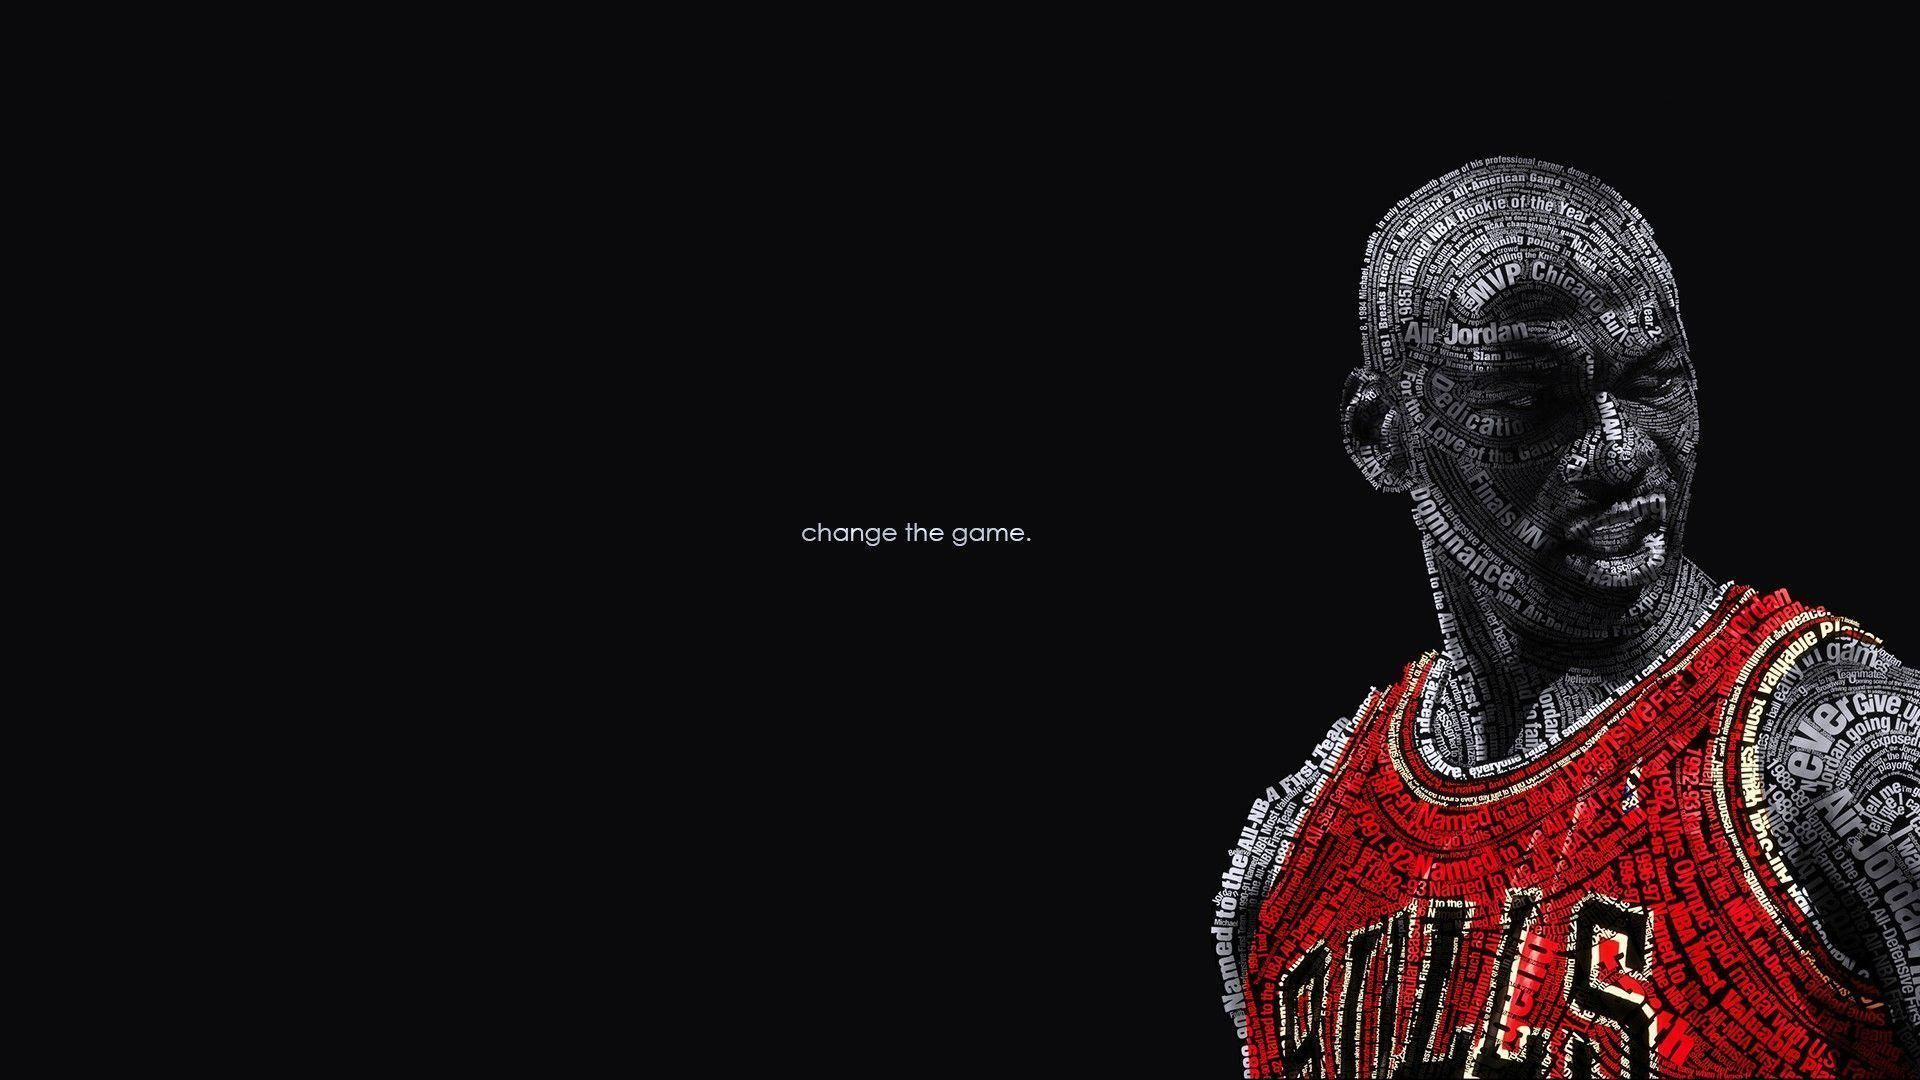 Hypebeast Pc Wallpapers Top Free Hypebeast Pc Backgrounds Wallpaperaccess